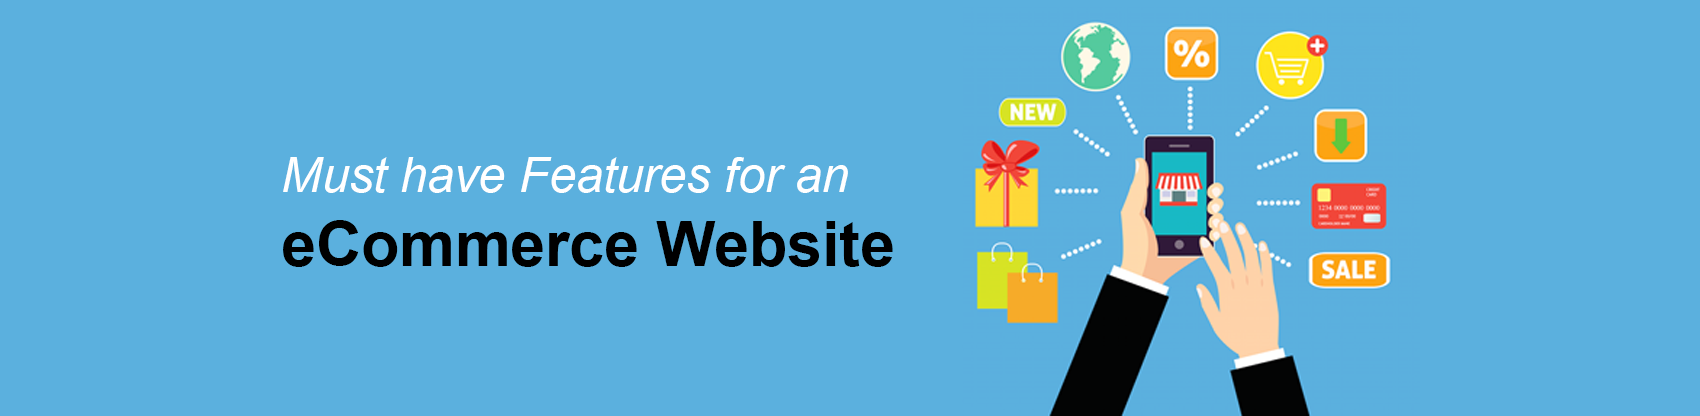 Must have Features for an eCommerce Website